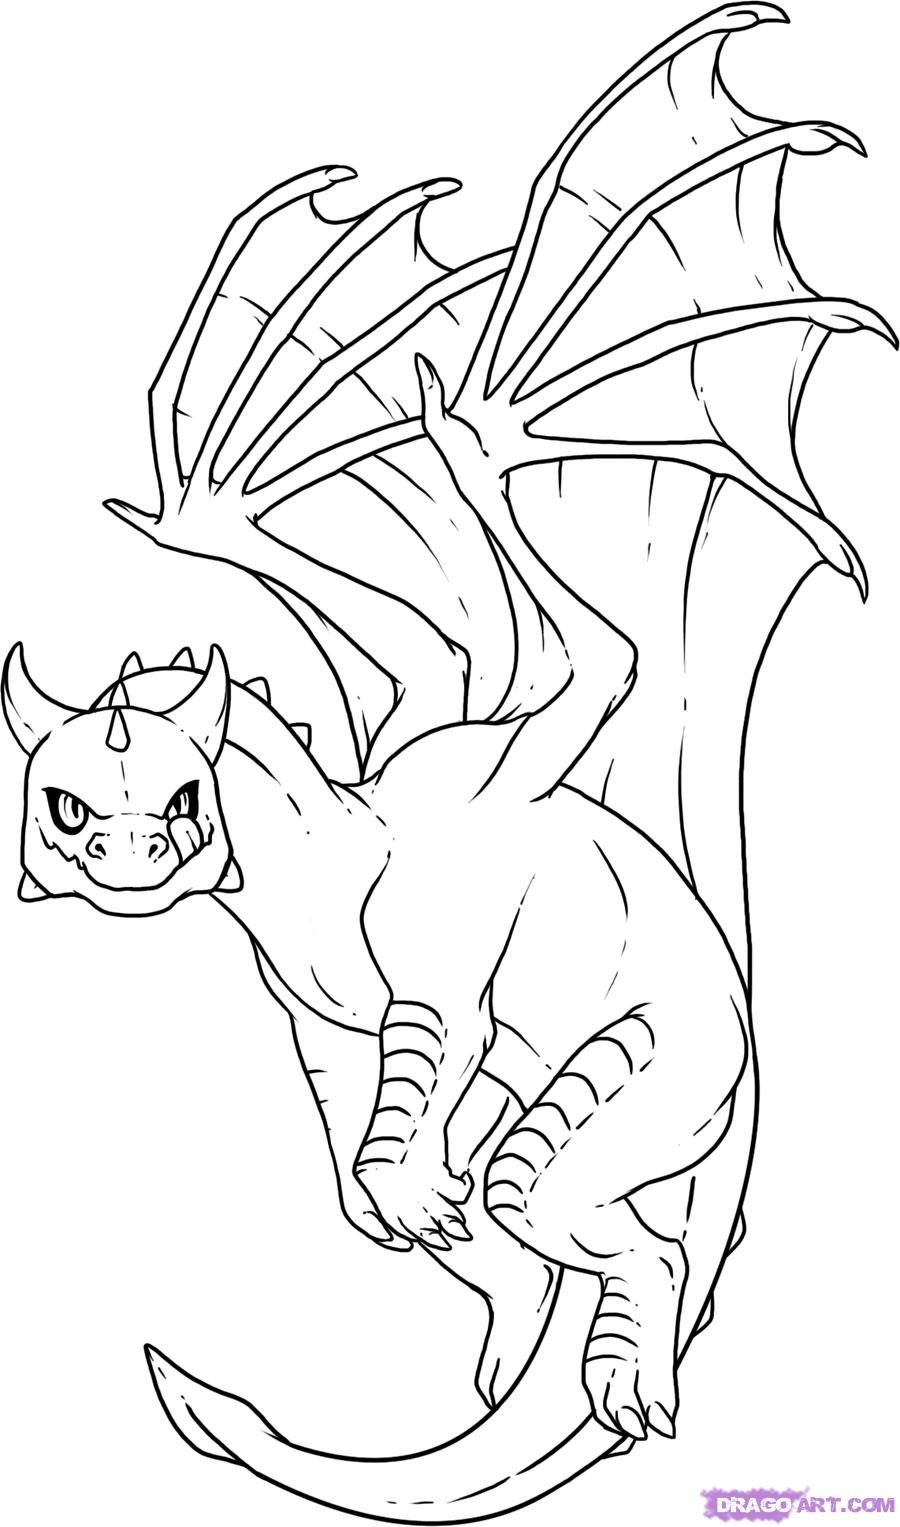 dragon coloring pages how to draw baby dragon step by step dragons - How To Draw Coloring Pages